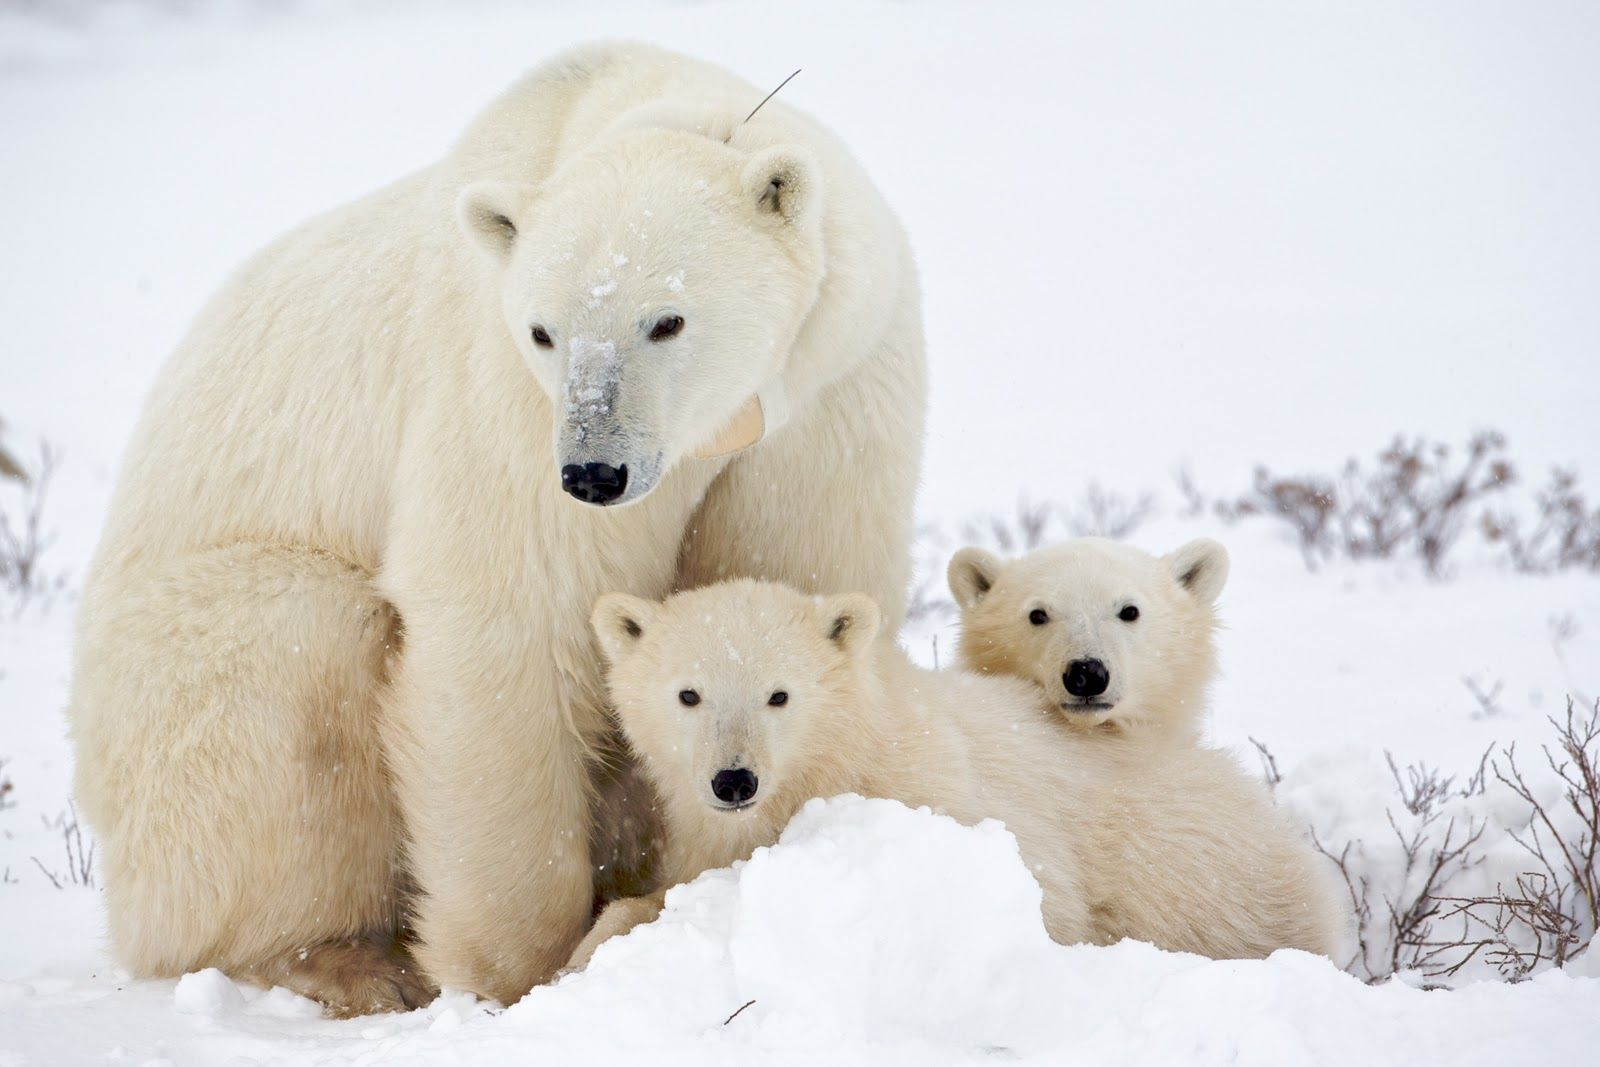 Pregnant polar bears need to eat a lot in the summer and fall build up enough fat reserves to survive the denning period.